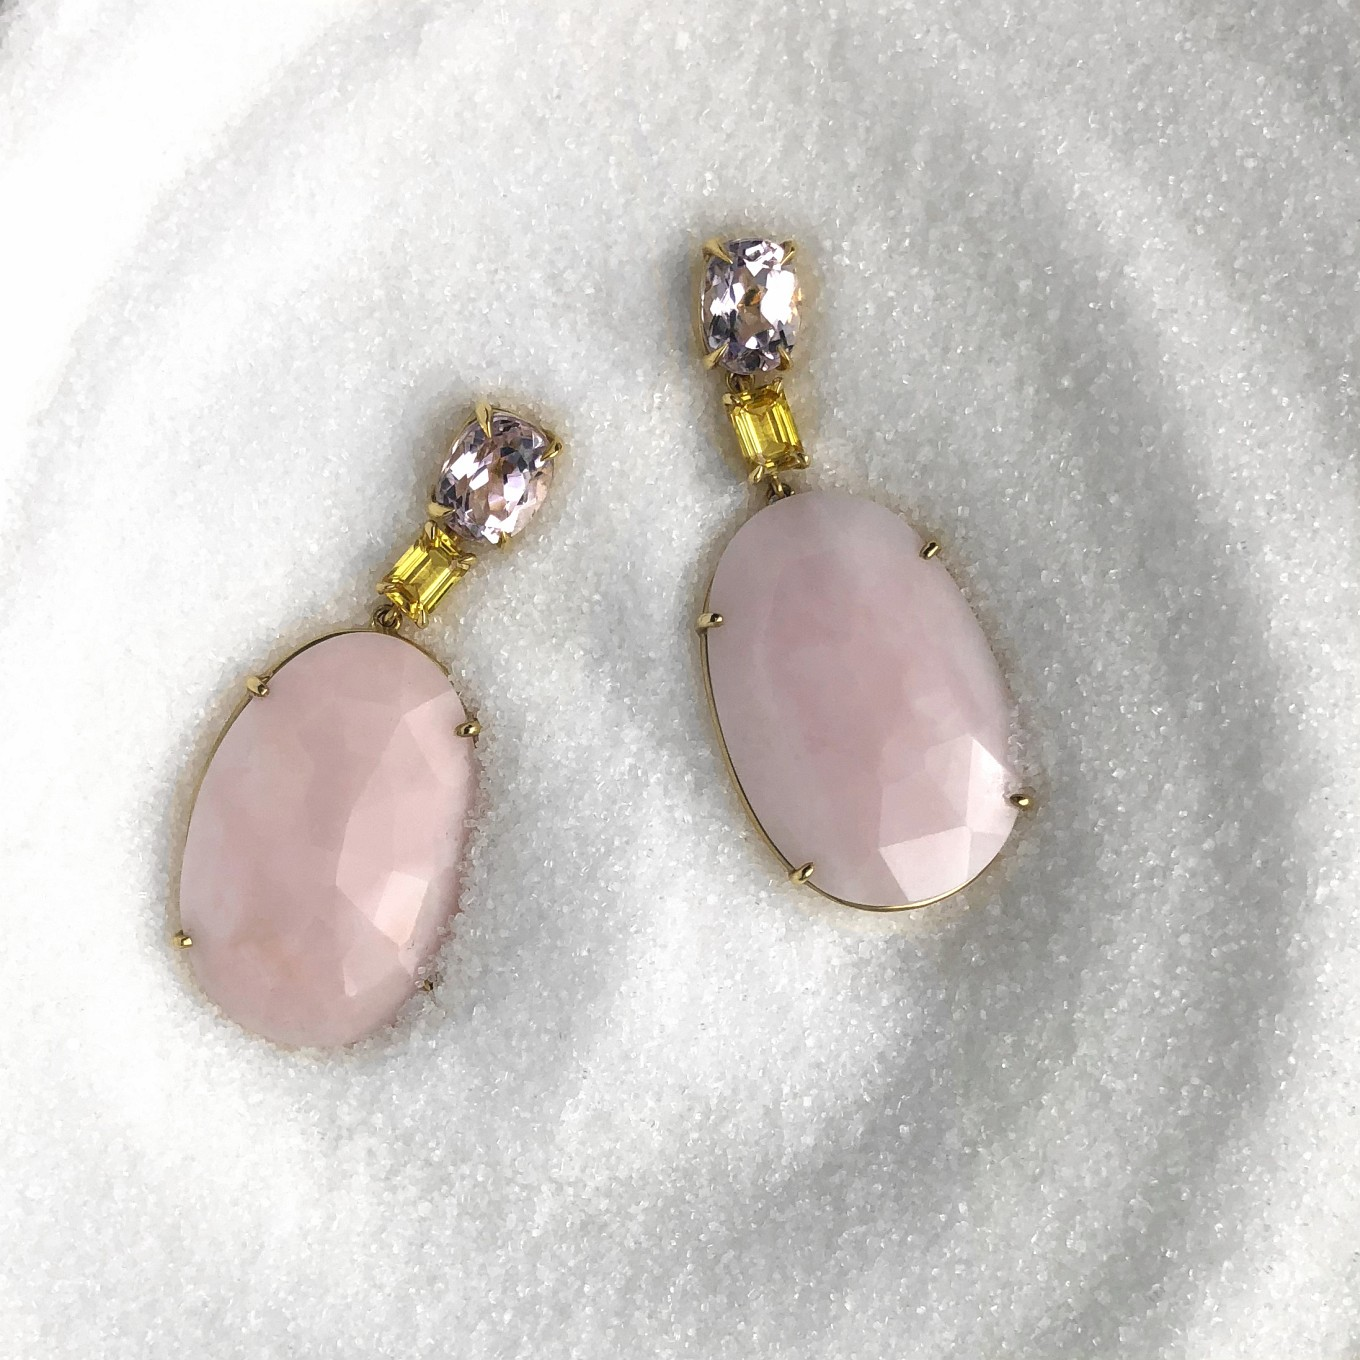 ROSE CUT PINK OPAL EARRINGS WITH KUNZITE & YELLOW SAPPHIRE IN YELLOW GOLD